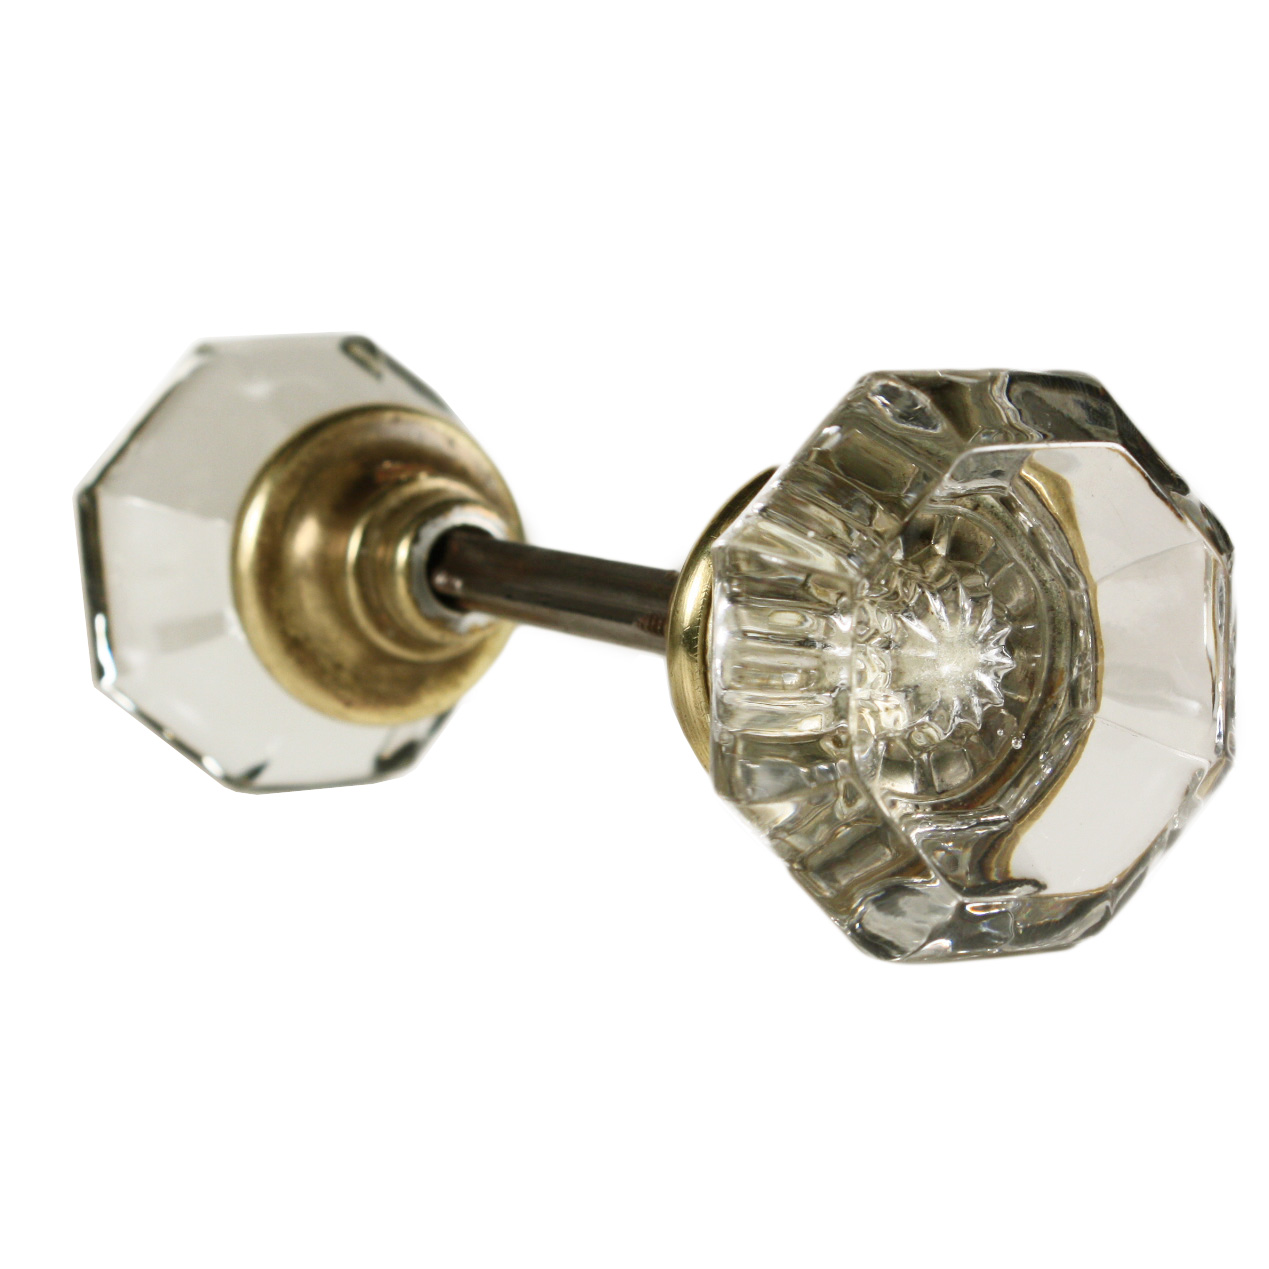 old glass door knobs for sale photo - 13